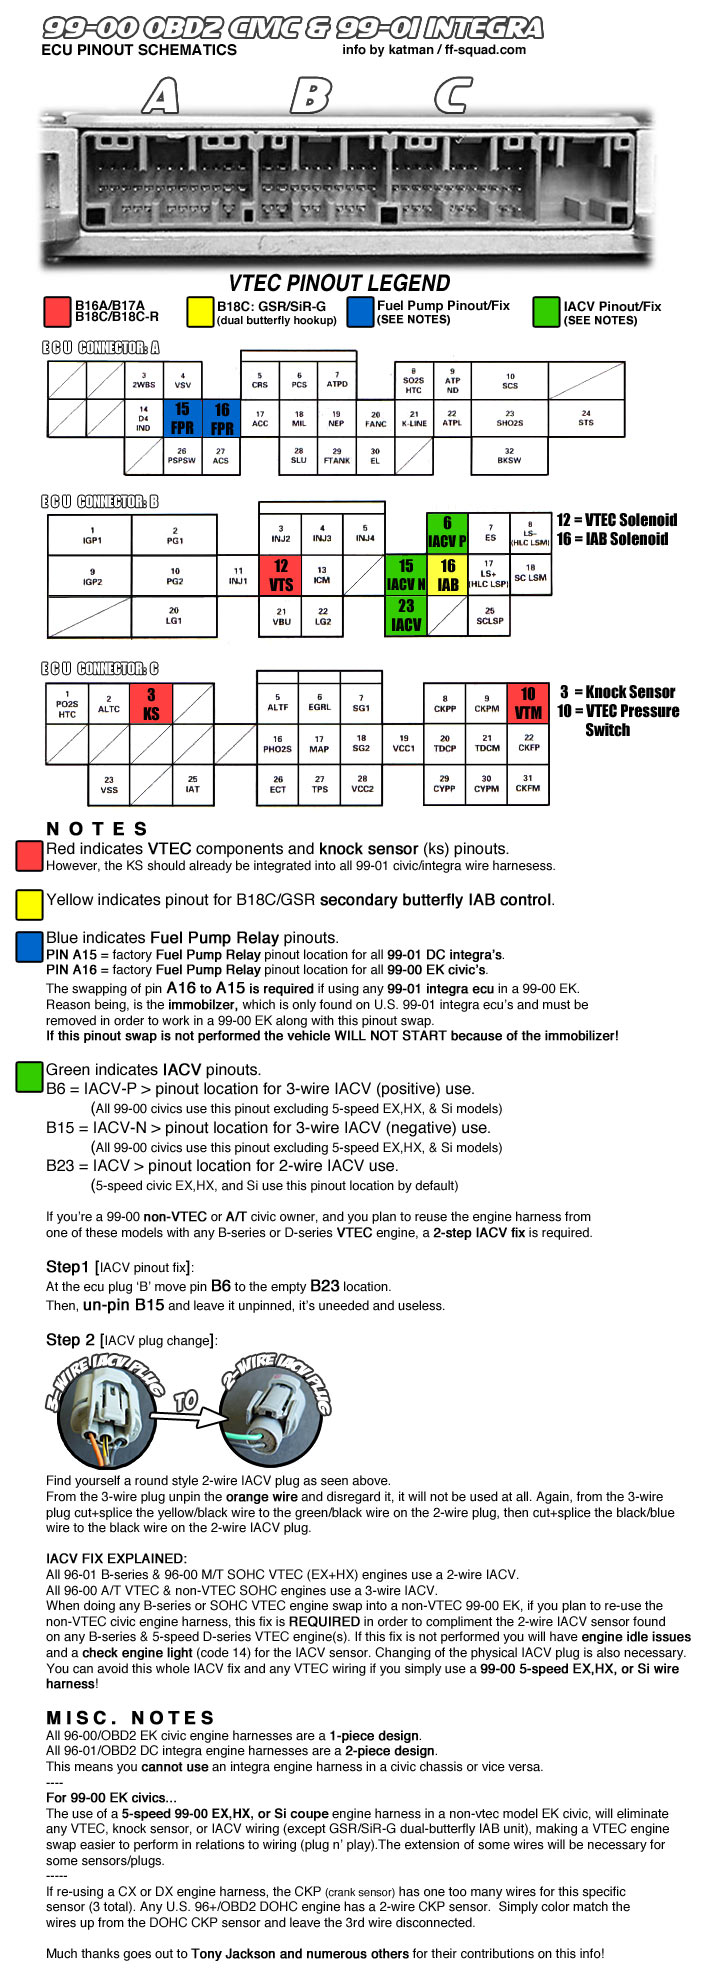 small resolution of  medium resolution of civic hybrid wiring guide for 99 00 obd2b civics